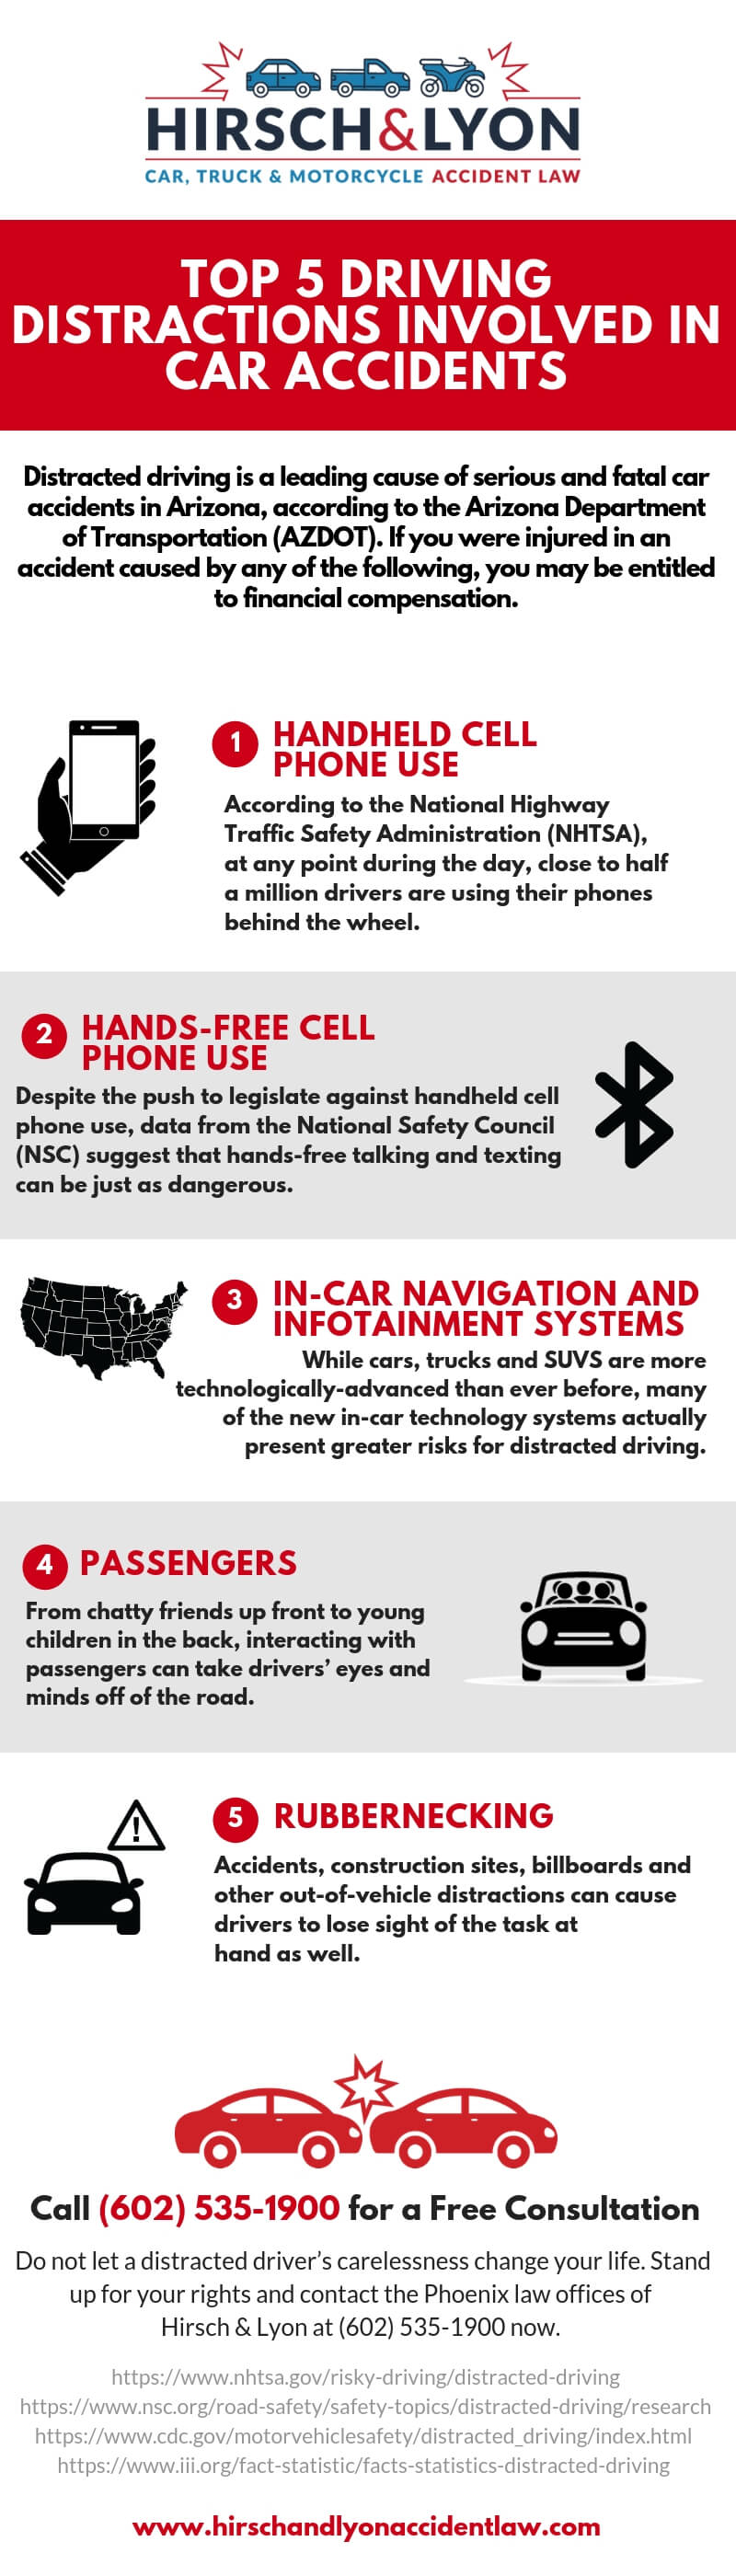 Hirsch & Lyon Infographic - Top 5 Driving Distractions Involved in Car Accidents